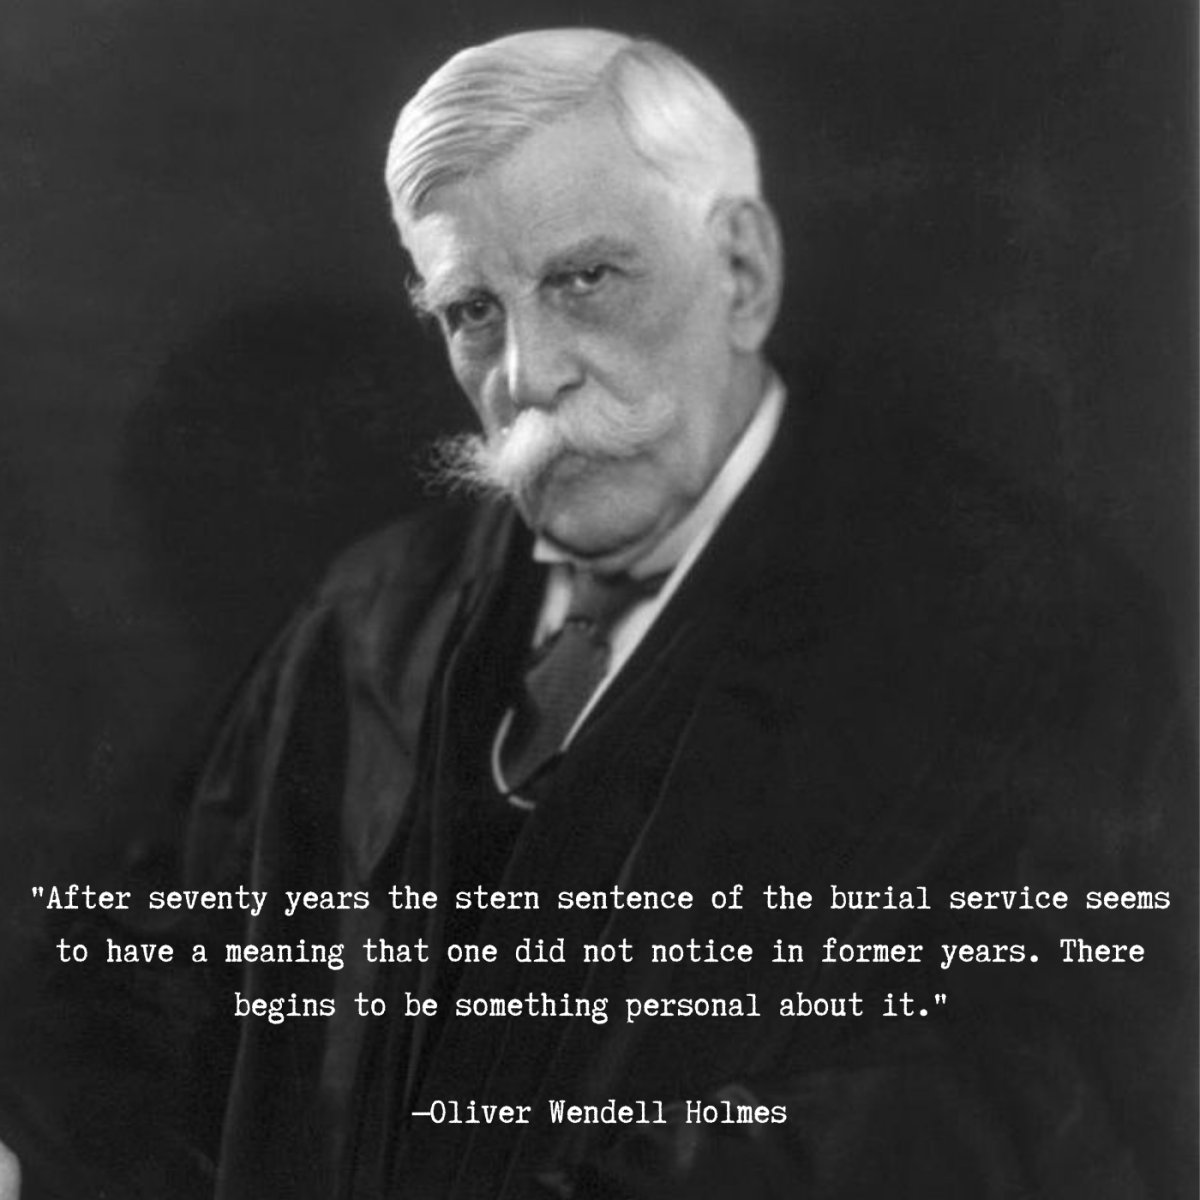 """After seventy years the stern sentence of the burial service seems to have a meaning that one did not notice in former years. There begins to be something personal about it."" —Oliver Wendell Holmes"